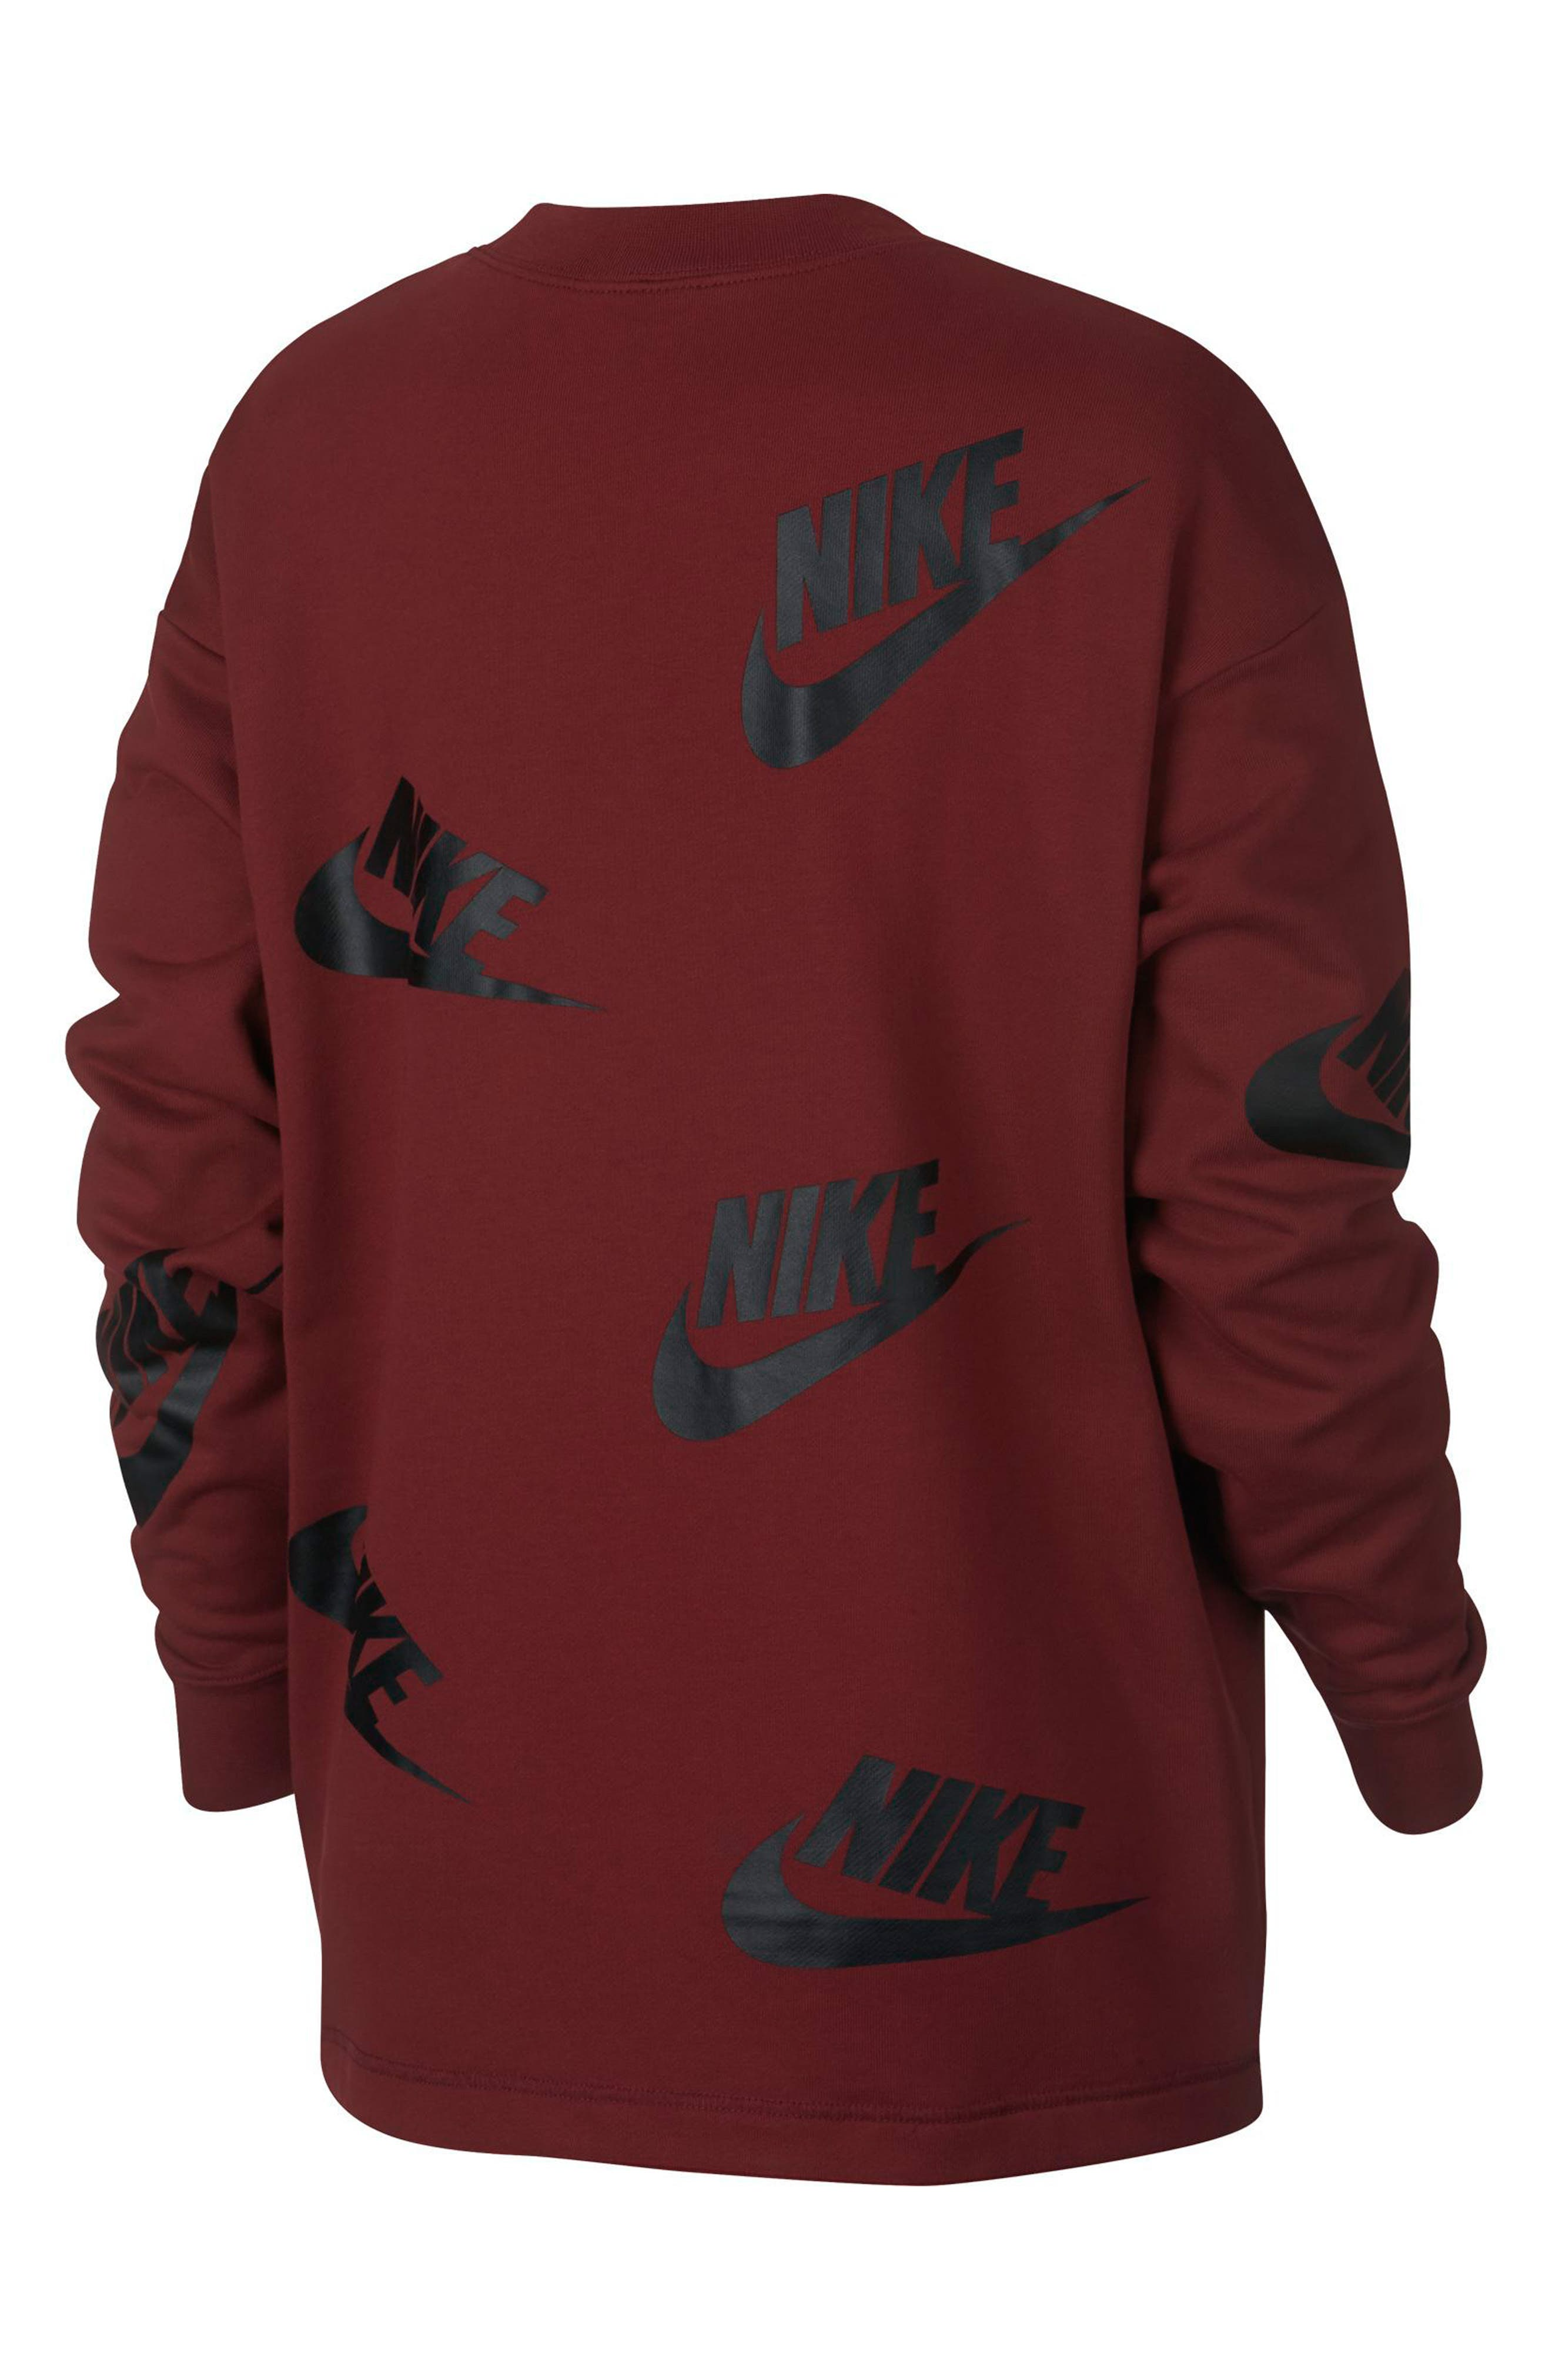 NIKE,                             Sportswear Futura Women's Crewneck Sweatshirt,                             Alternate thumbnail 2, color,                             600